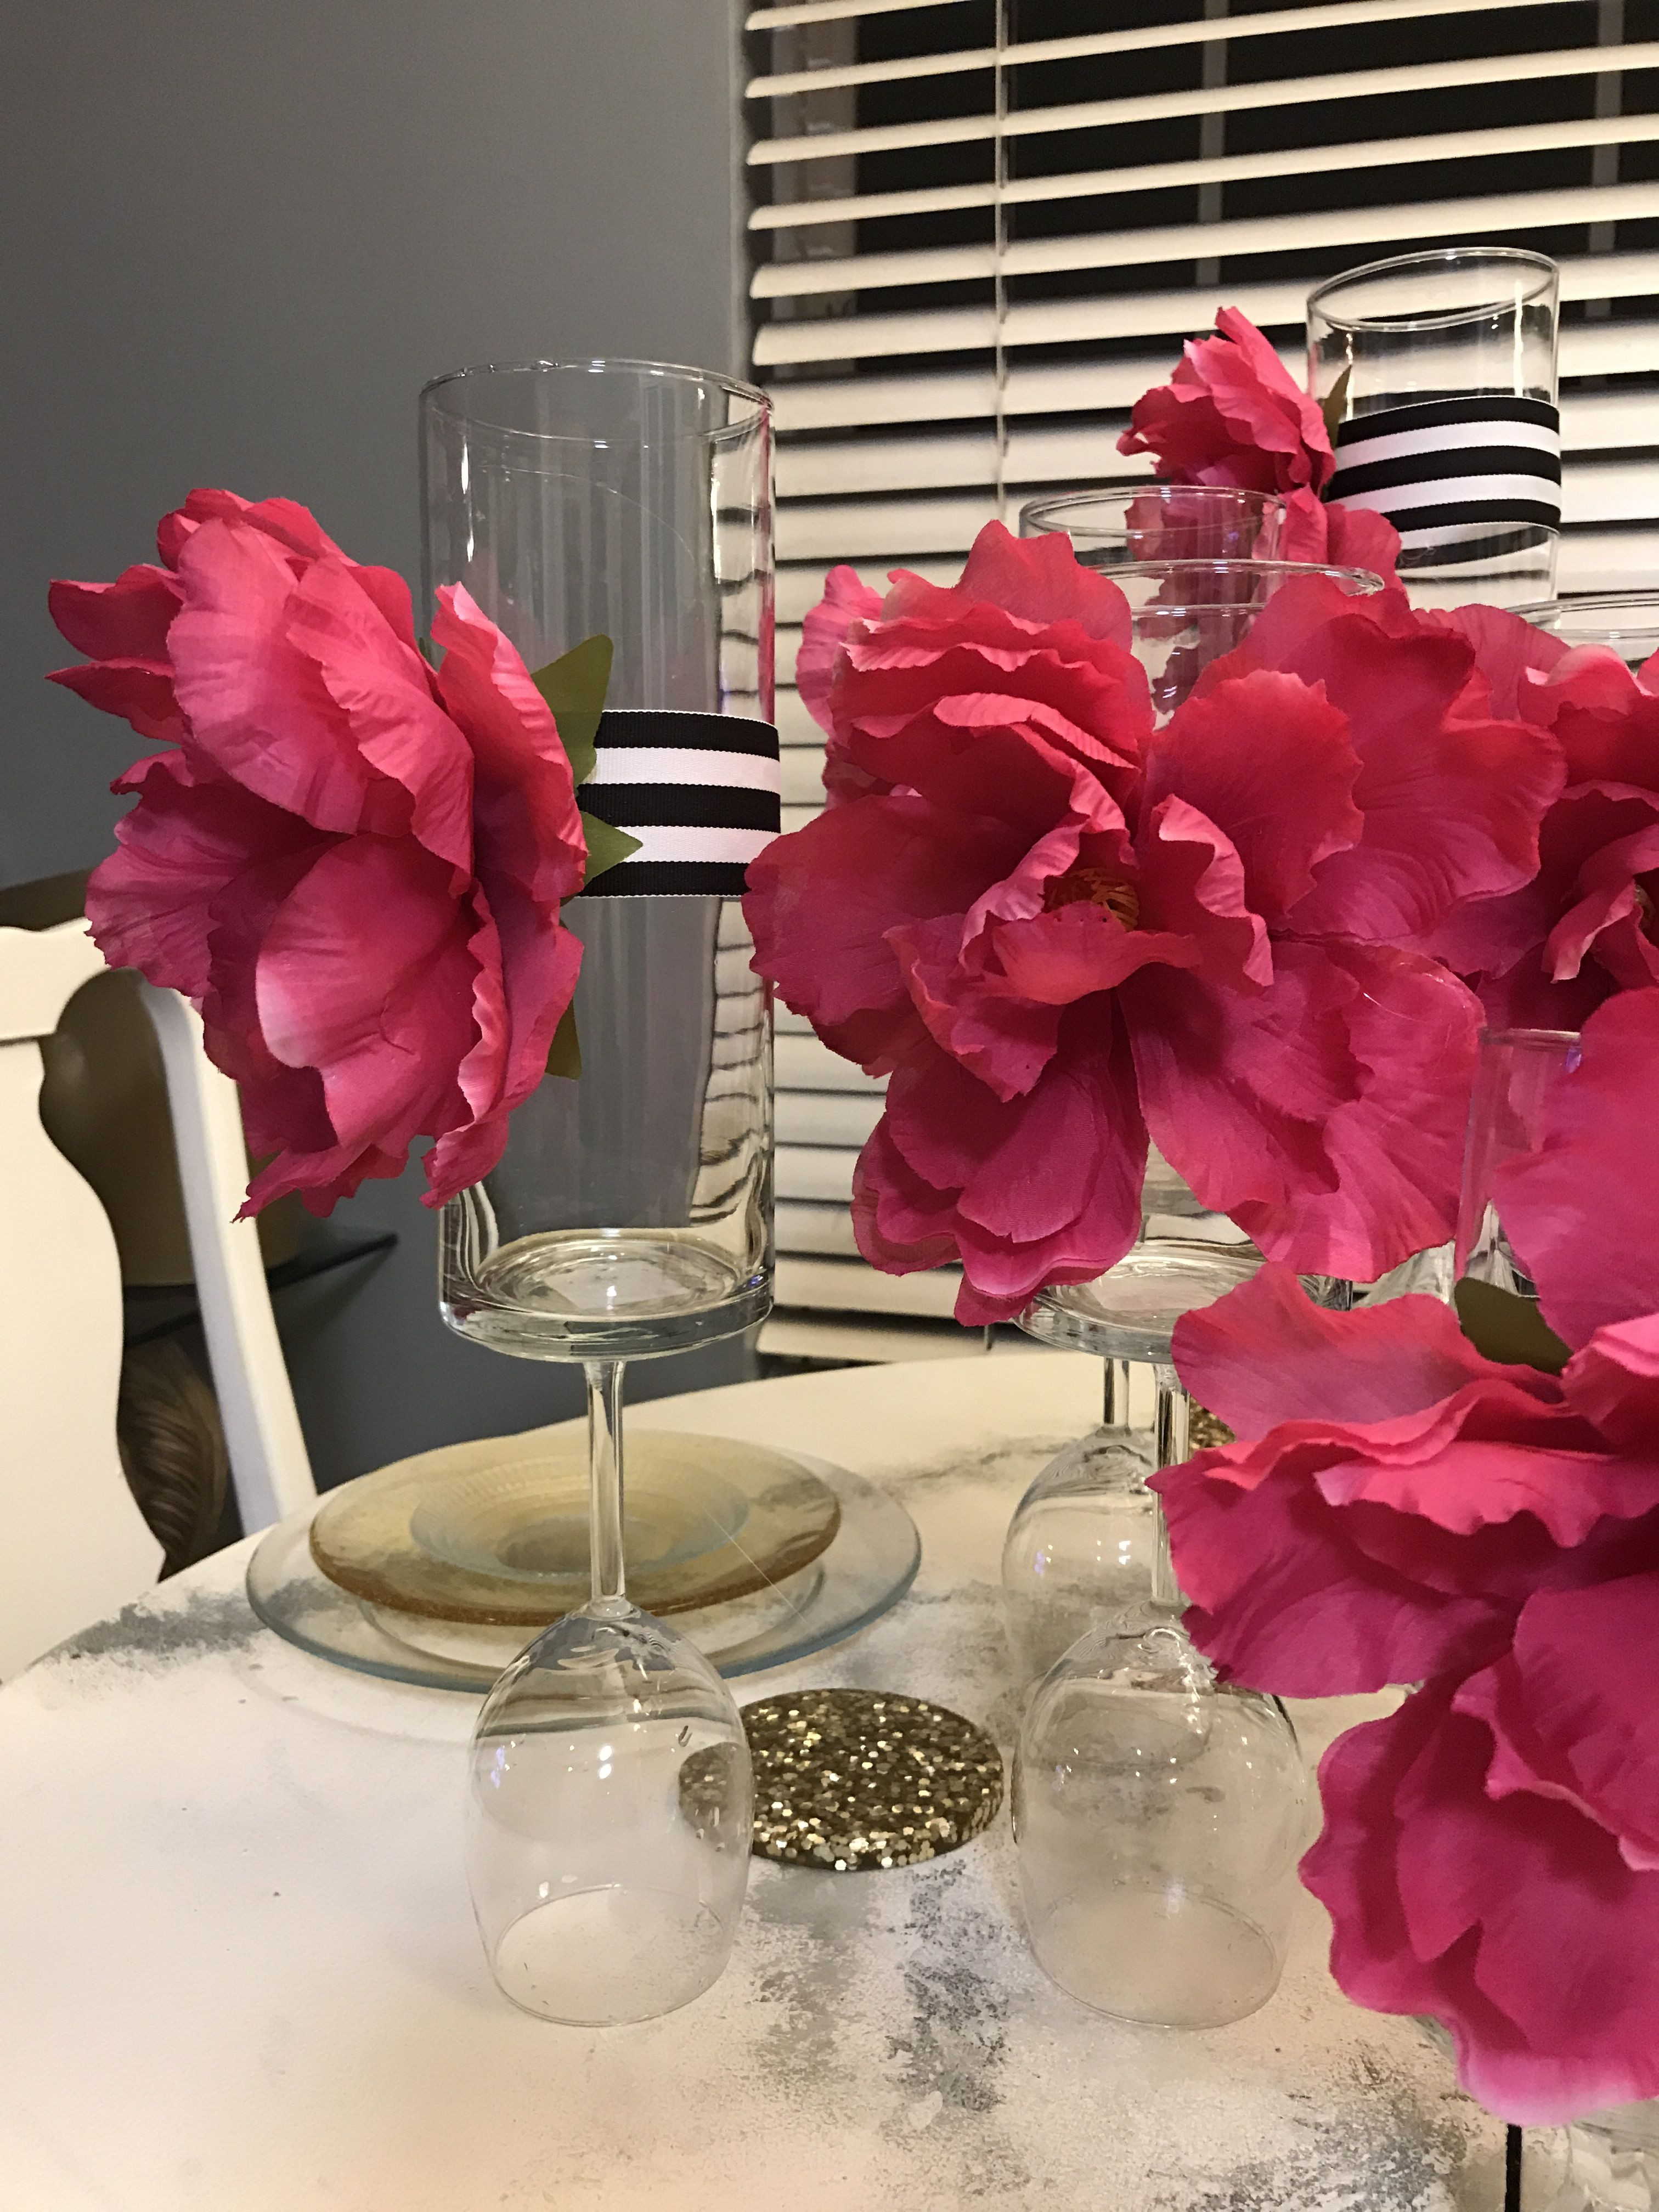 kate spade crystal vase of centerpieces diy flower centerpieces glass vase centerpiece kate inside centerpieces diy flower centerpieces glass vase centerpiece kate spade inspired centerpiece